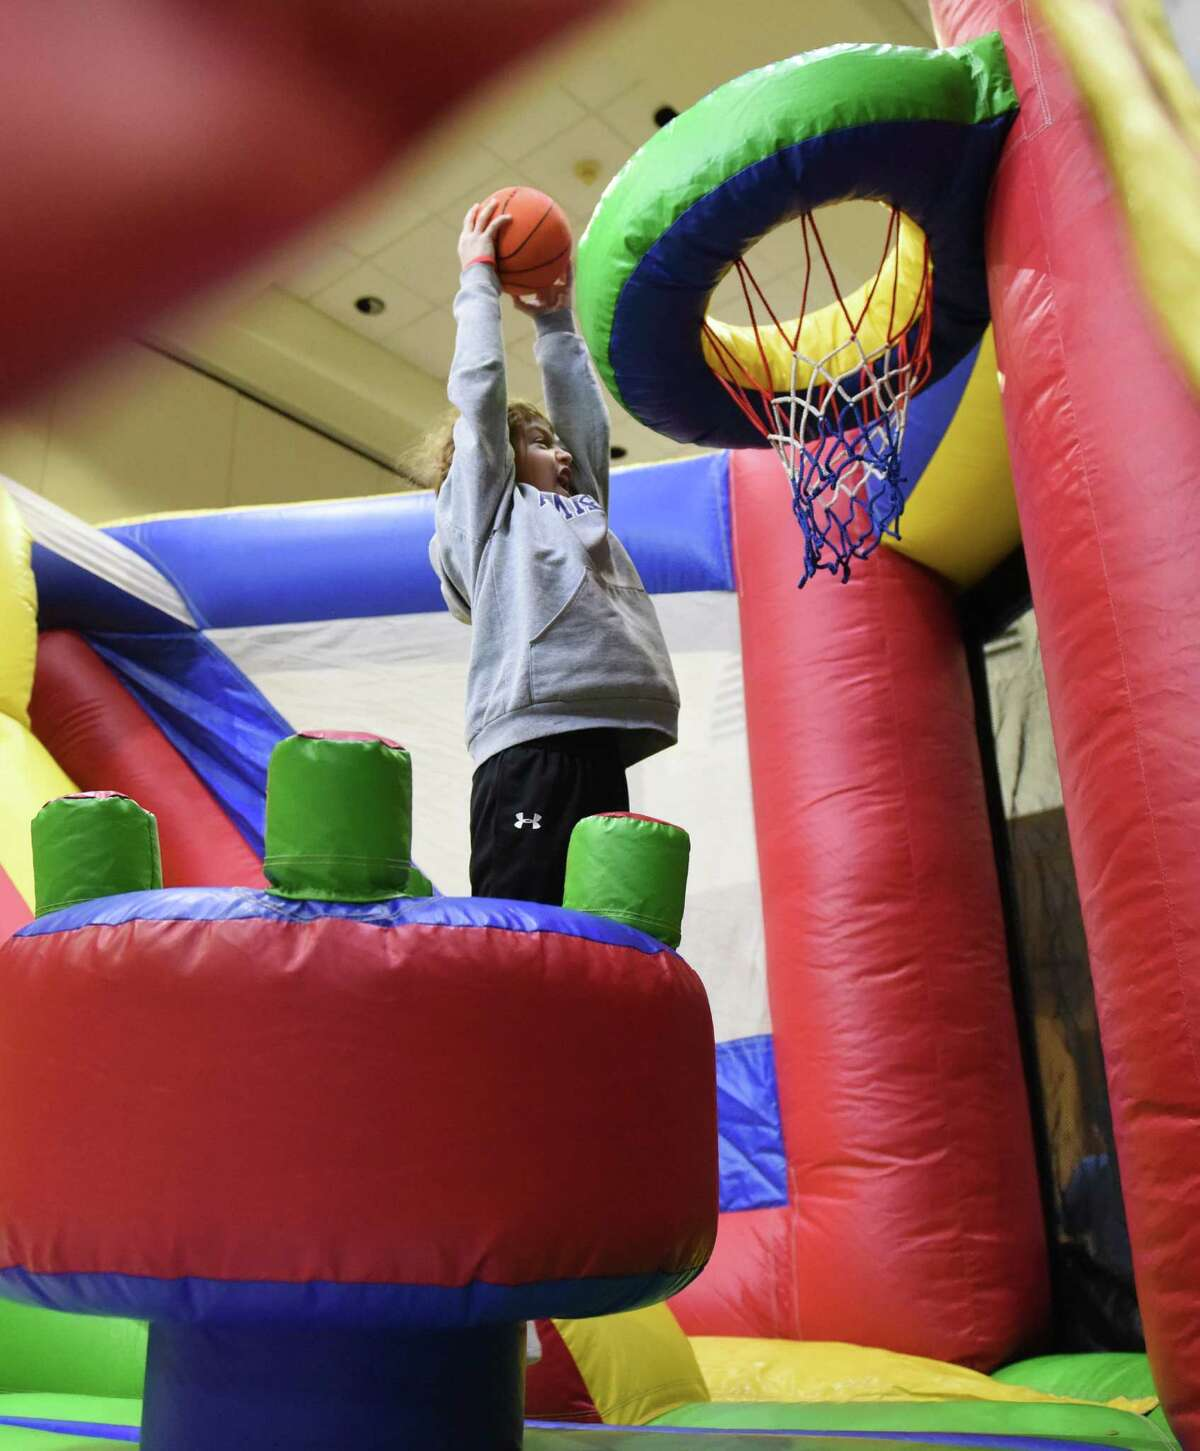 Max Raff, 9, of Armonk, N.Y., dunks a basketball in the bouncehouse at the Purim Carnival at Temple Sholom in Greenwich, Conn. Sunday, March 20, 2016. Dozens of kids dressed in costume celebrated Purim with food and a variety of activities ranging from a bounce house to spin art. In the Jewish faith, Purim commemorates the saving of the Jewish people from Haman.